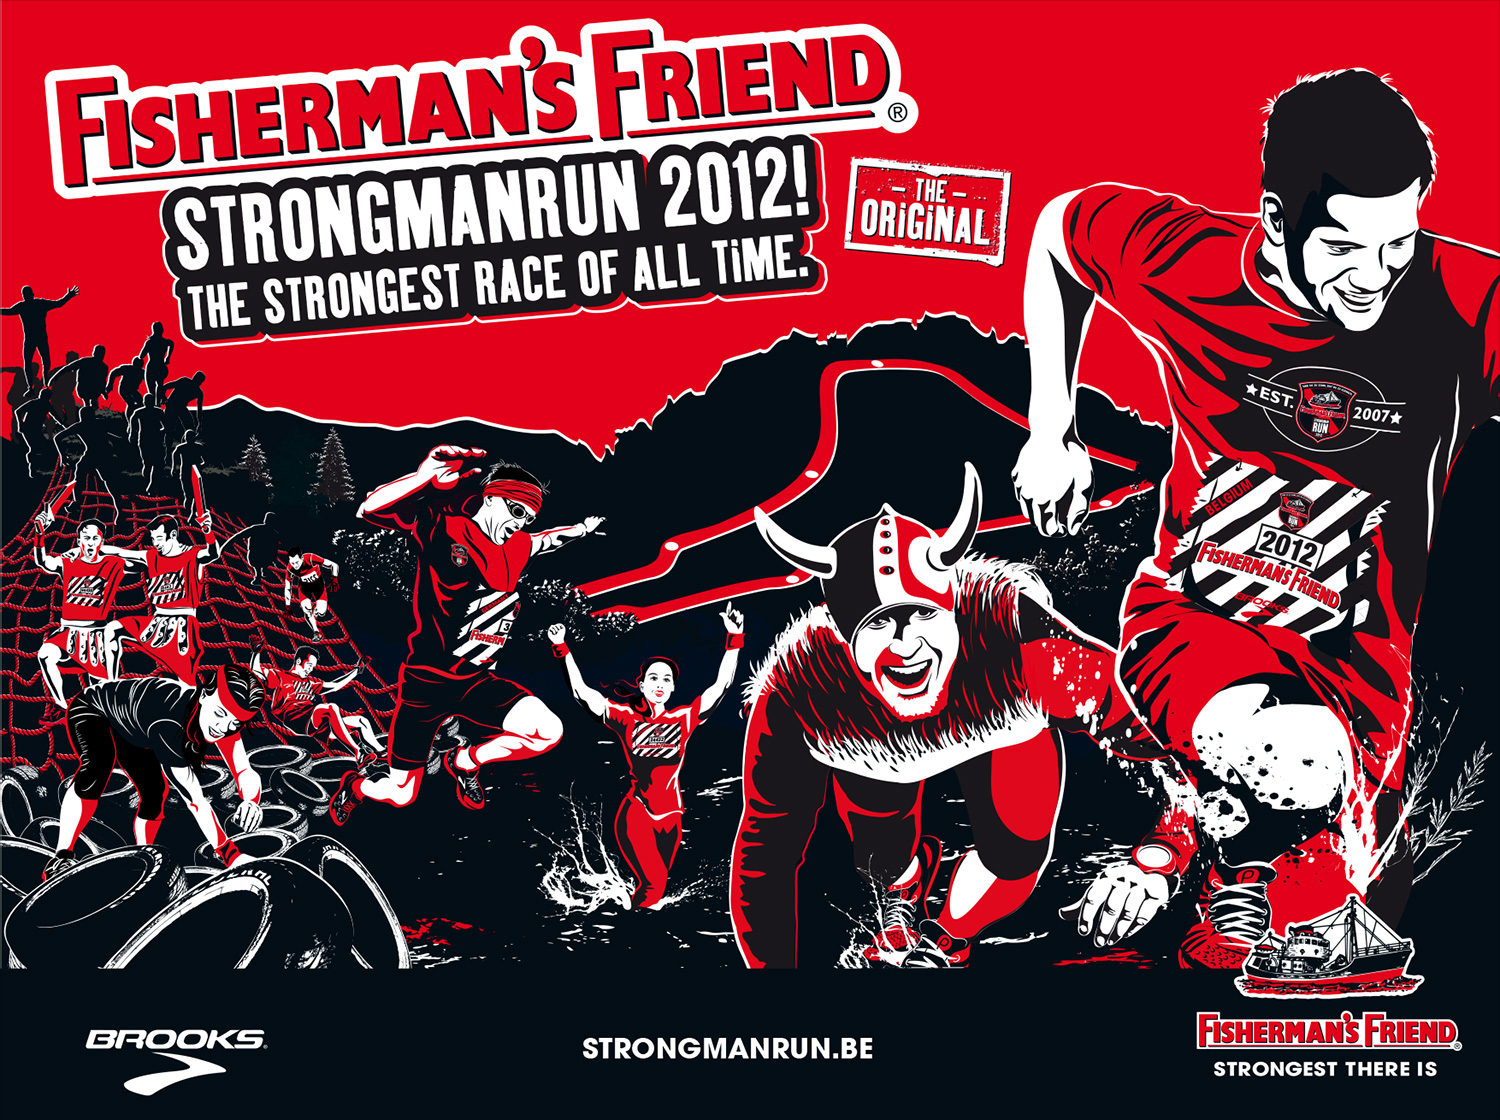 rbtq_Illustration_Seiser_Illustratorin_Hamburg_Strongmanrun_Print_Design_Keyvisual_Fishermans_01.jpg